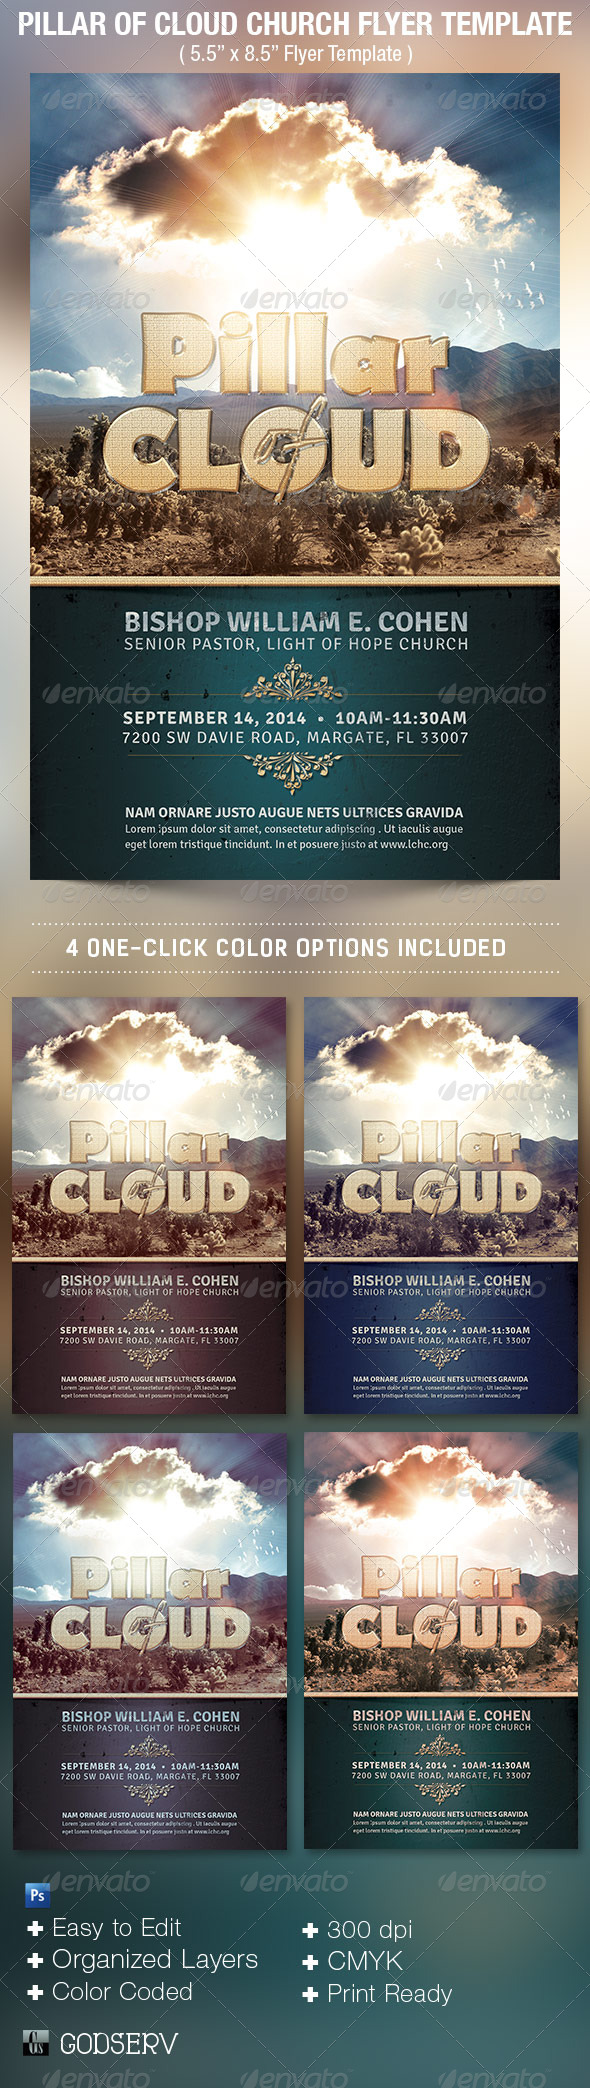 Pillar of Cloud Church Flyer Template - Print Templates